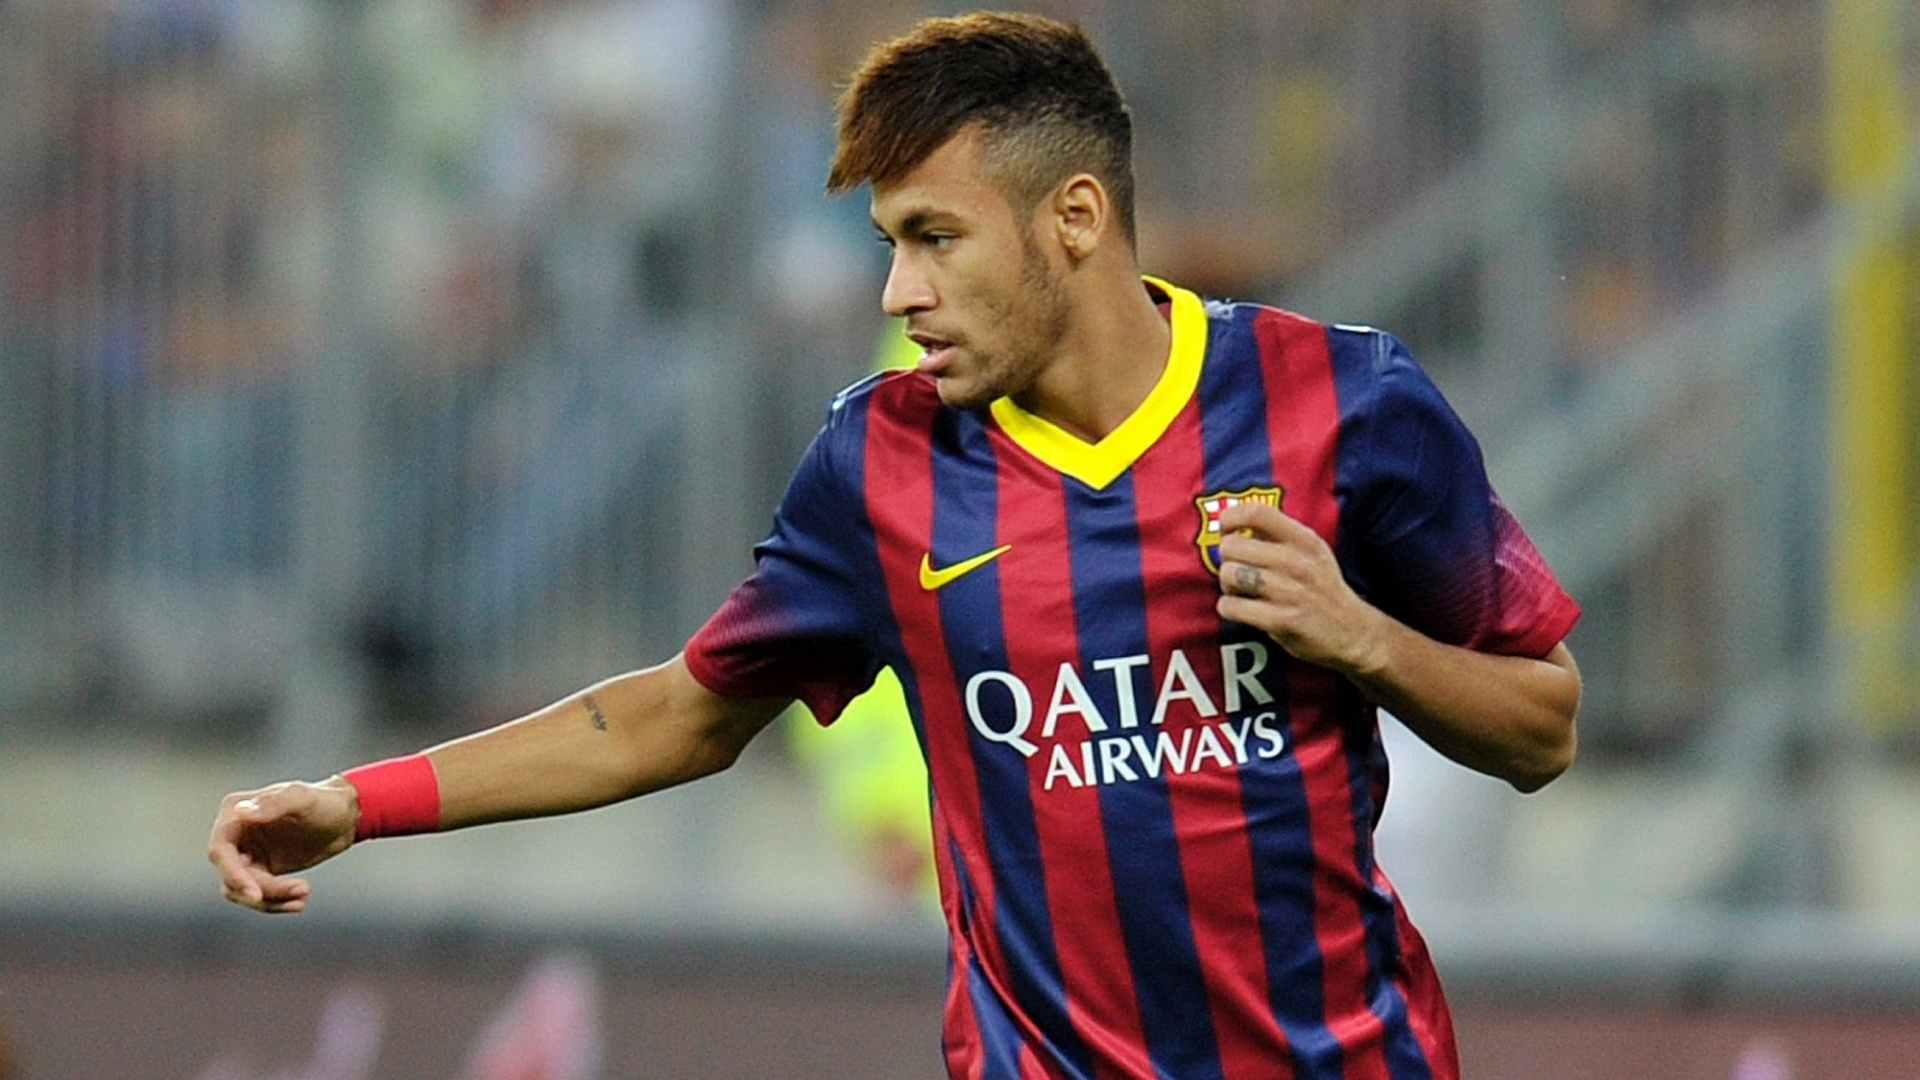 Neymar in FC Barcelona, in 2013-2014